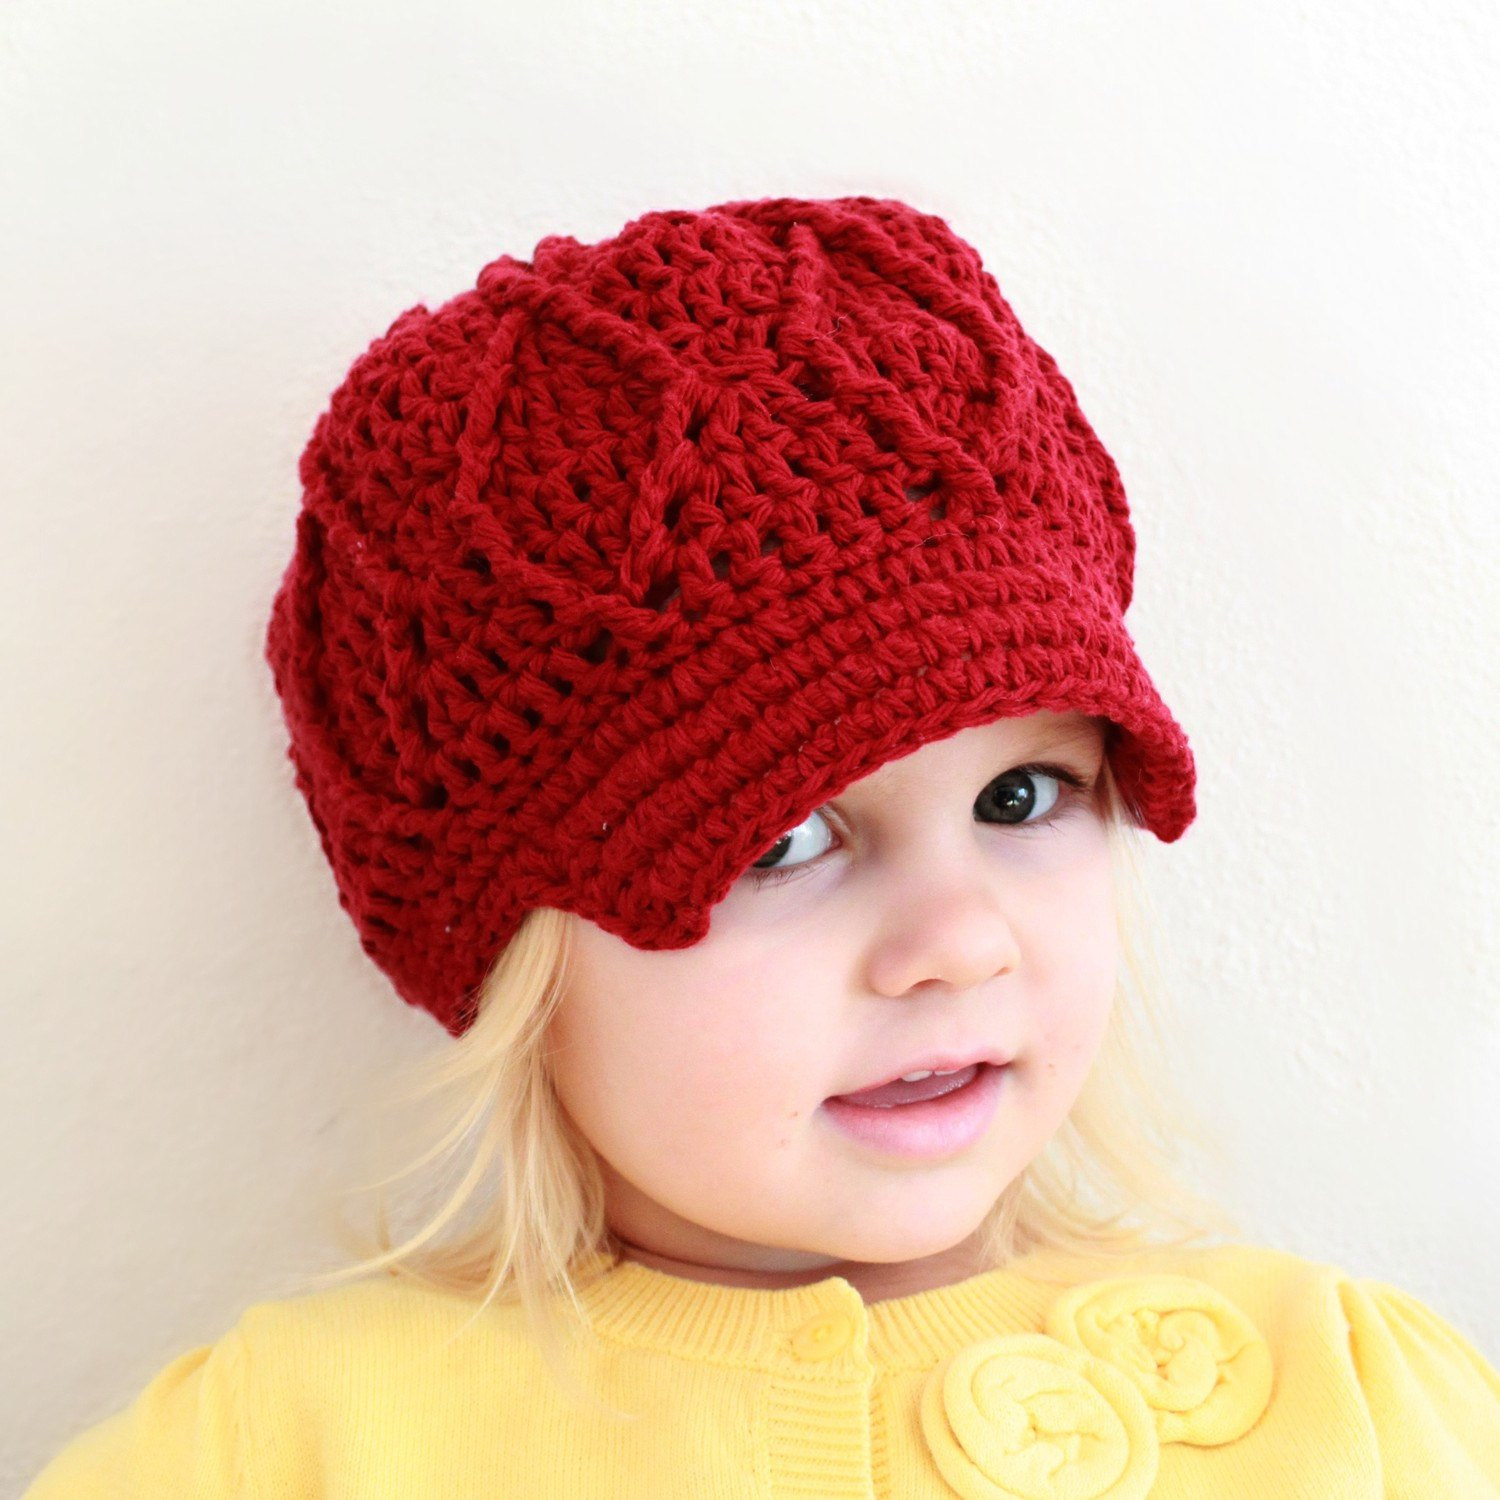 Crochet Girls Hats Lovely Instant Download Crochet Pattern Maggie Newsboy Hat Of New 46 Ideas Crochet Girls Hats